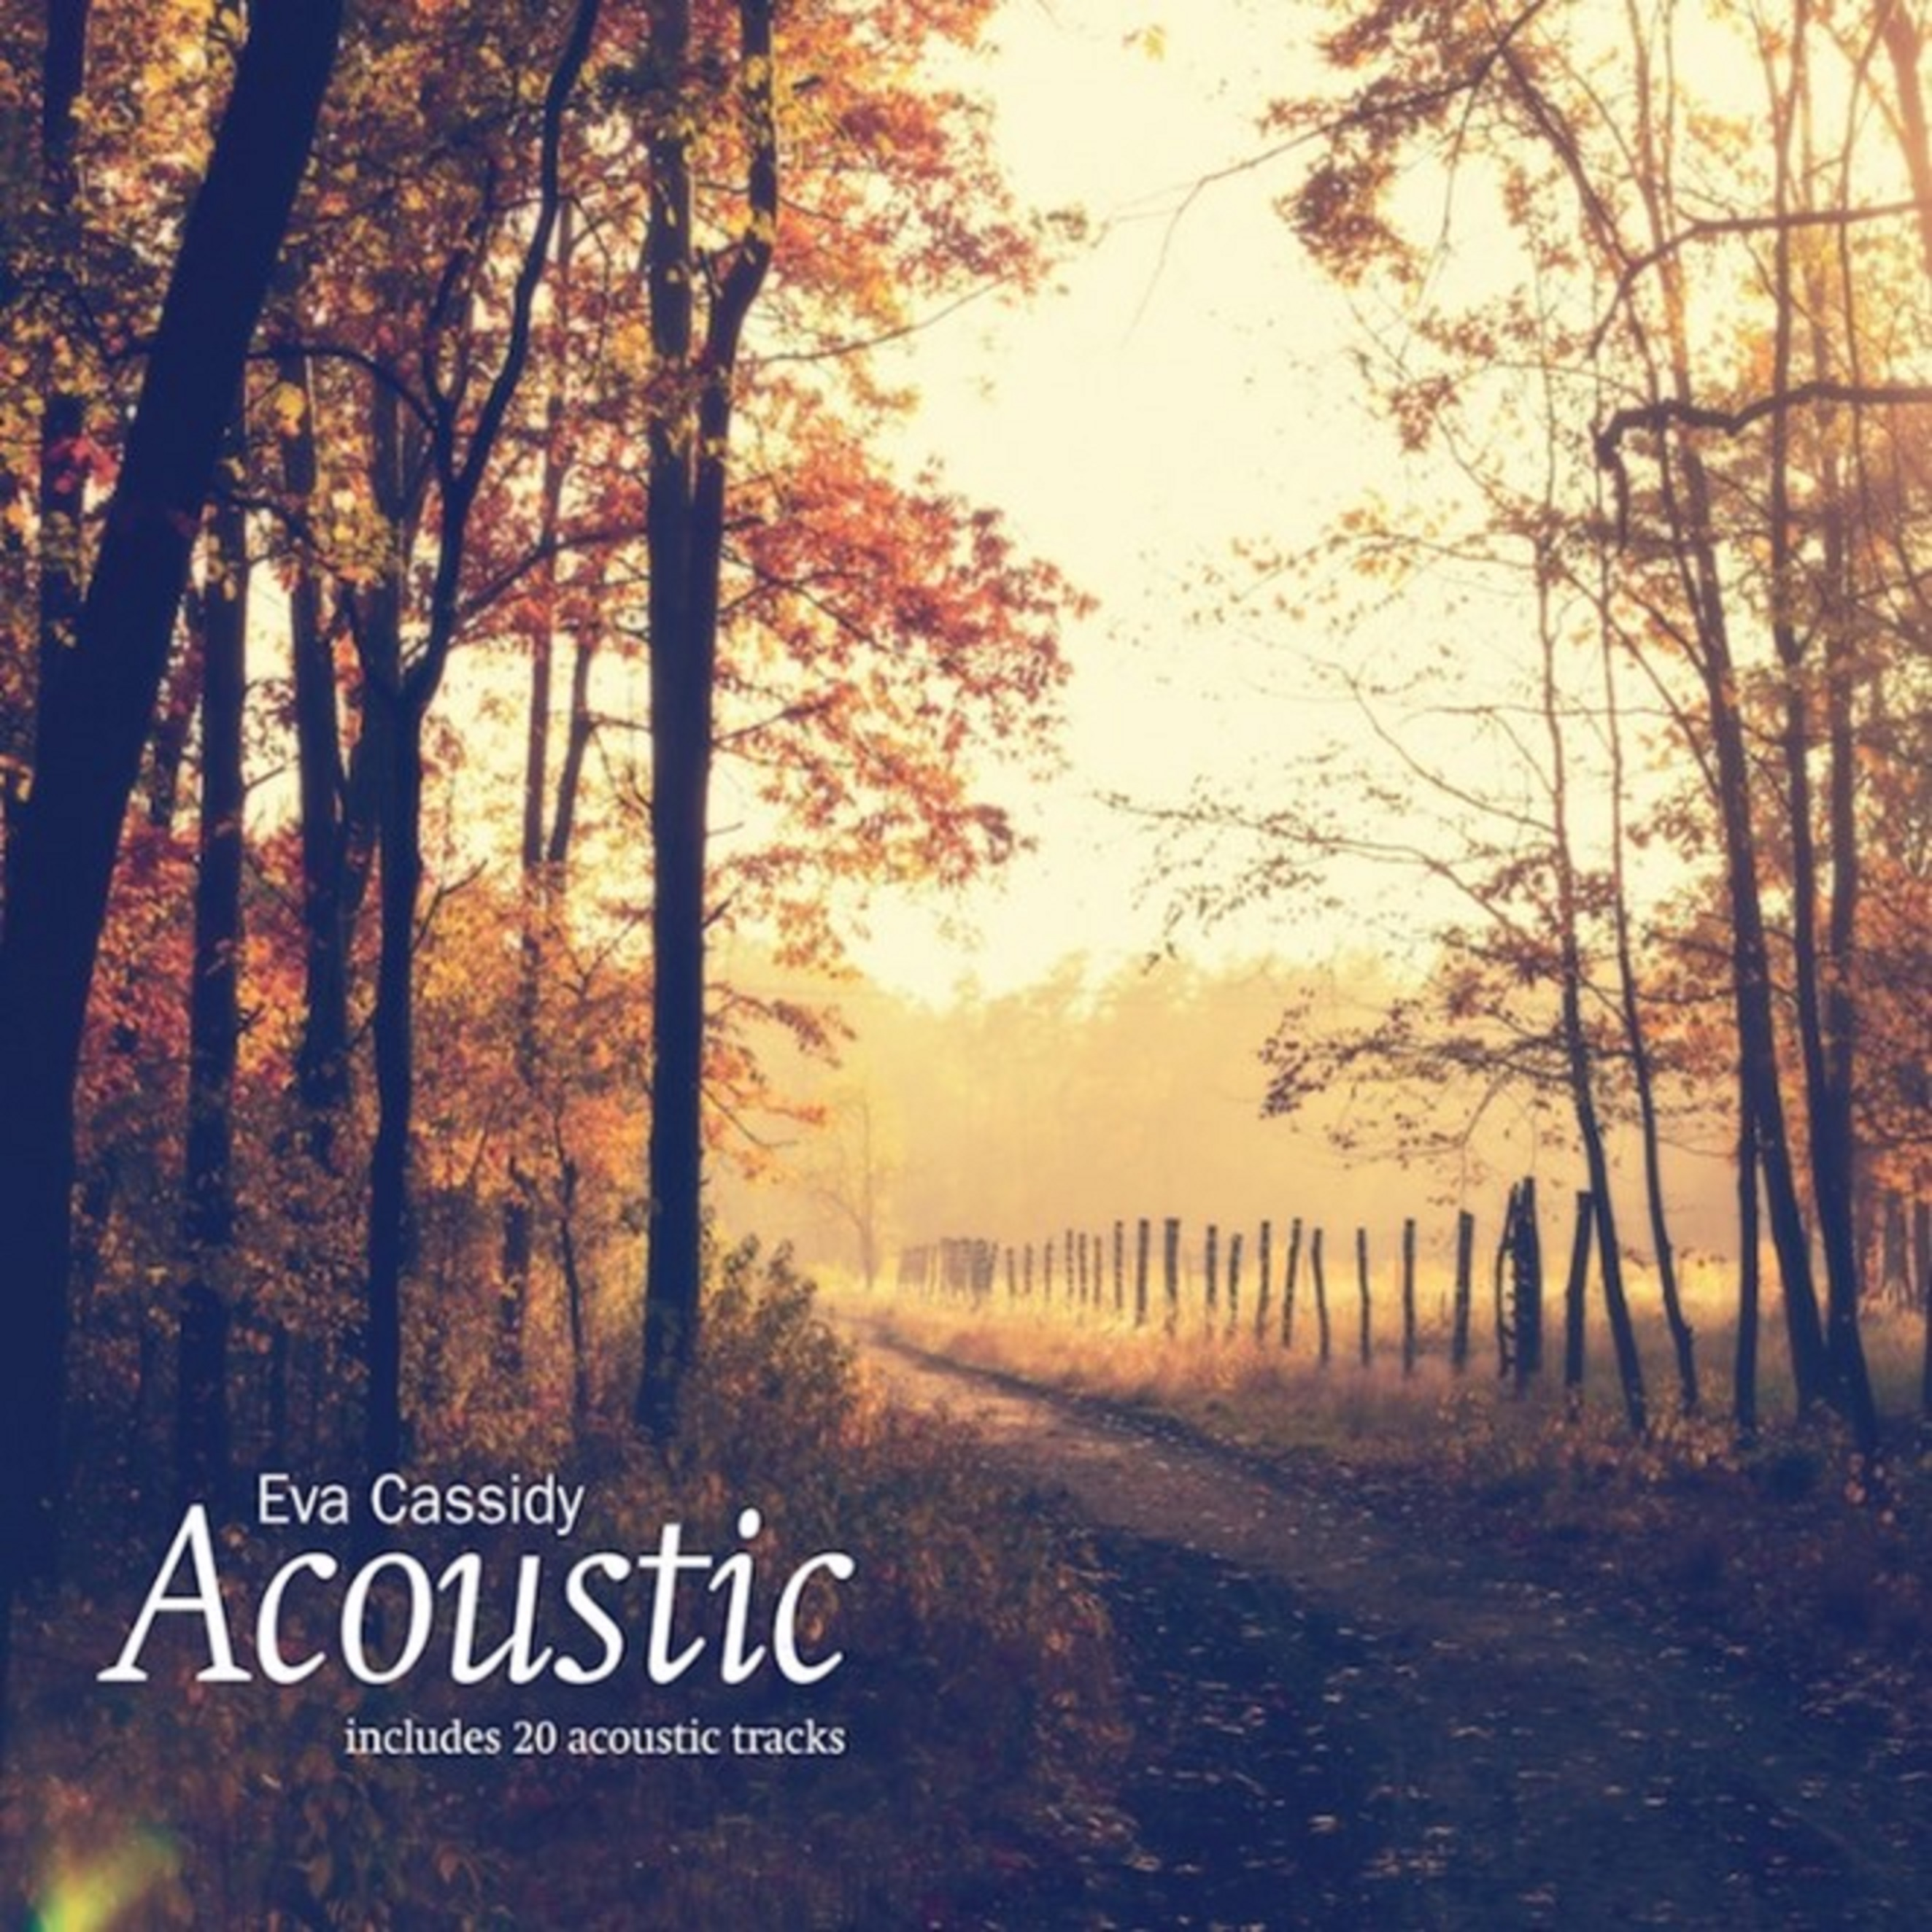 BLIX STREET RECORDS TO RELEASE EVA CASSIDY ACOUSTIC ALBUM ON JANUARY 15